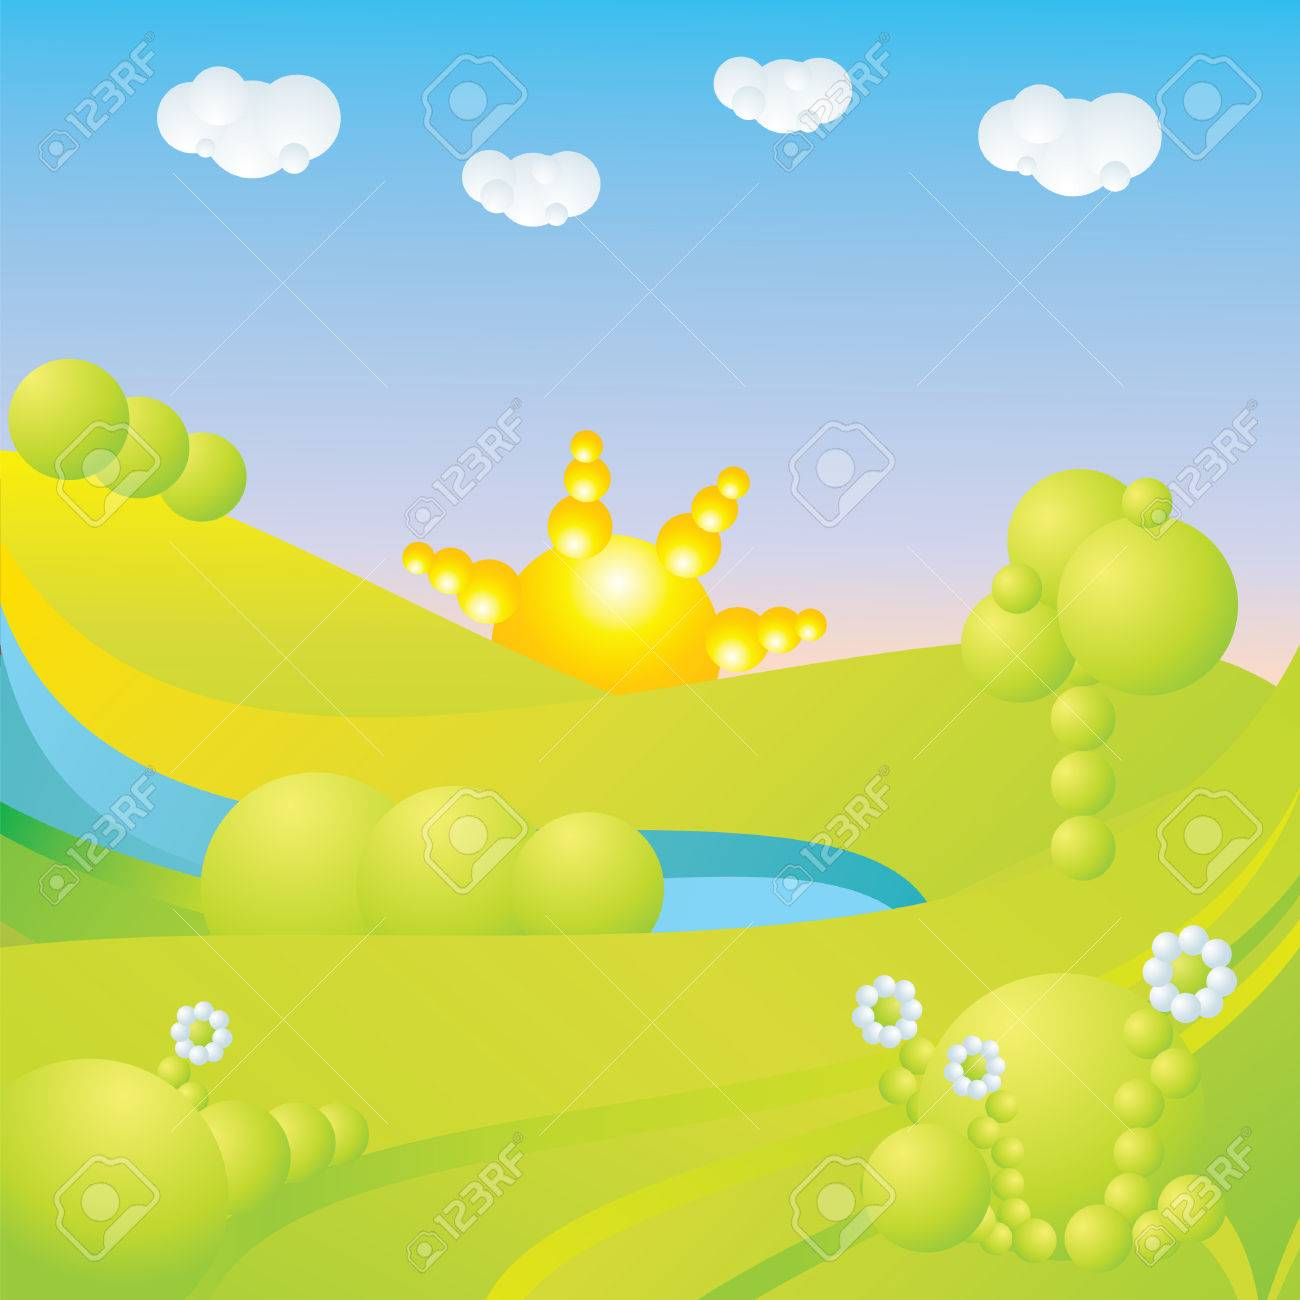 blue sky, green grass, trees, clouds, sun, water and flowers abstract landscape Stock Vector - 3068022